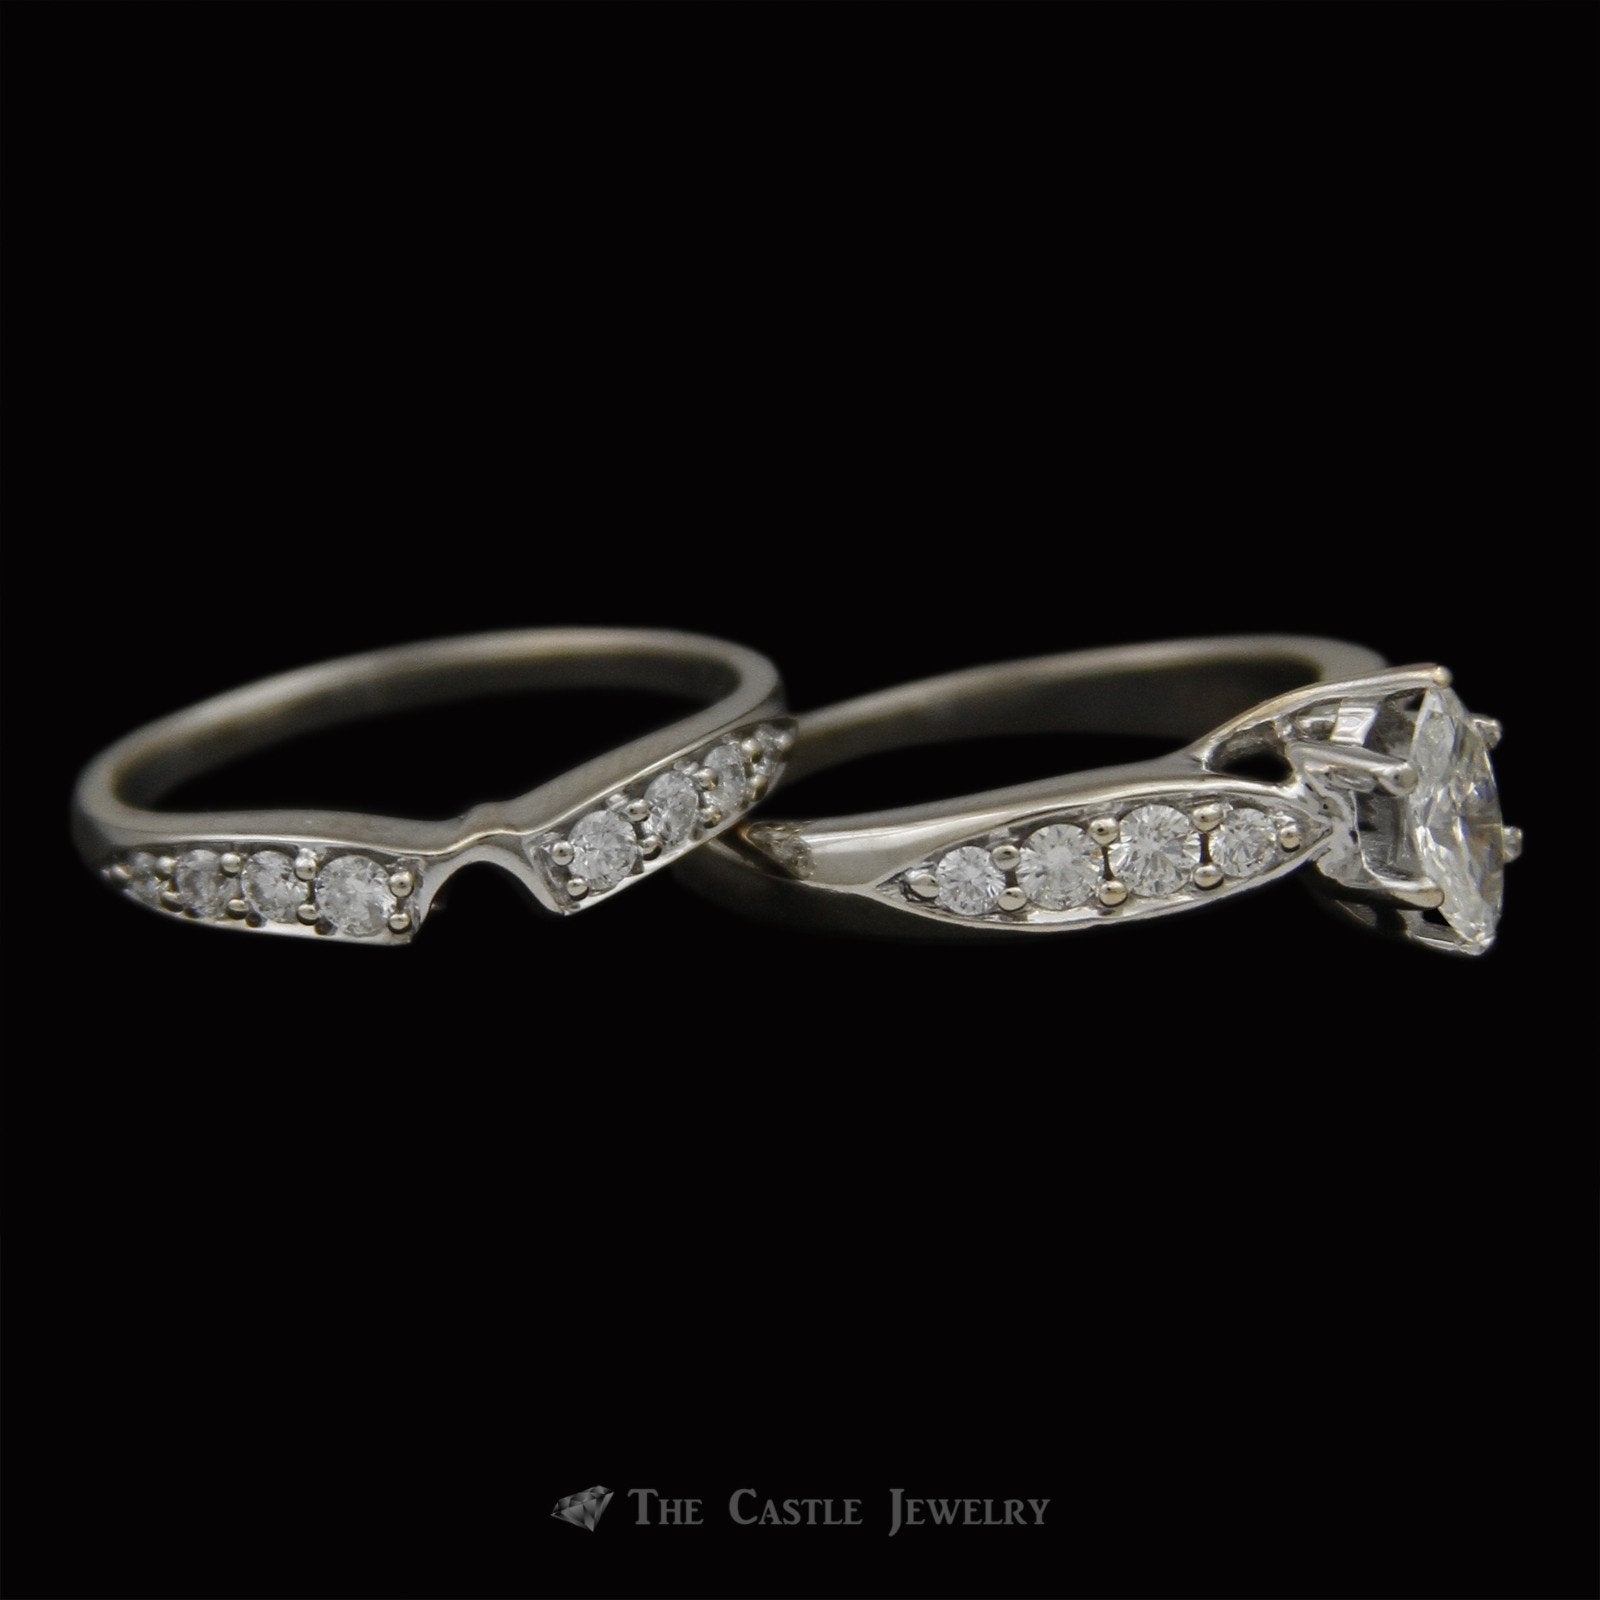 Marquise Diamond Bridal Set with Round Diamond Sides & Fitted Band Crafted in 18K White Gold-2